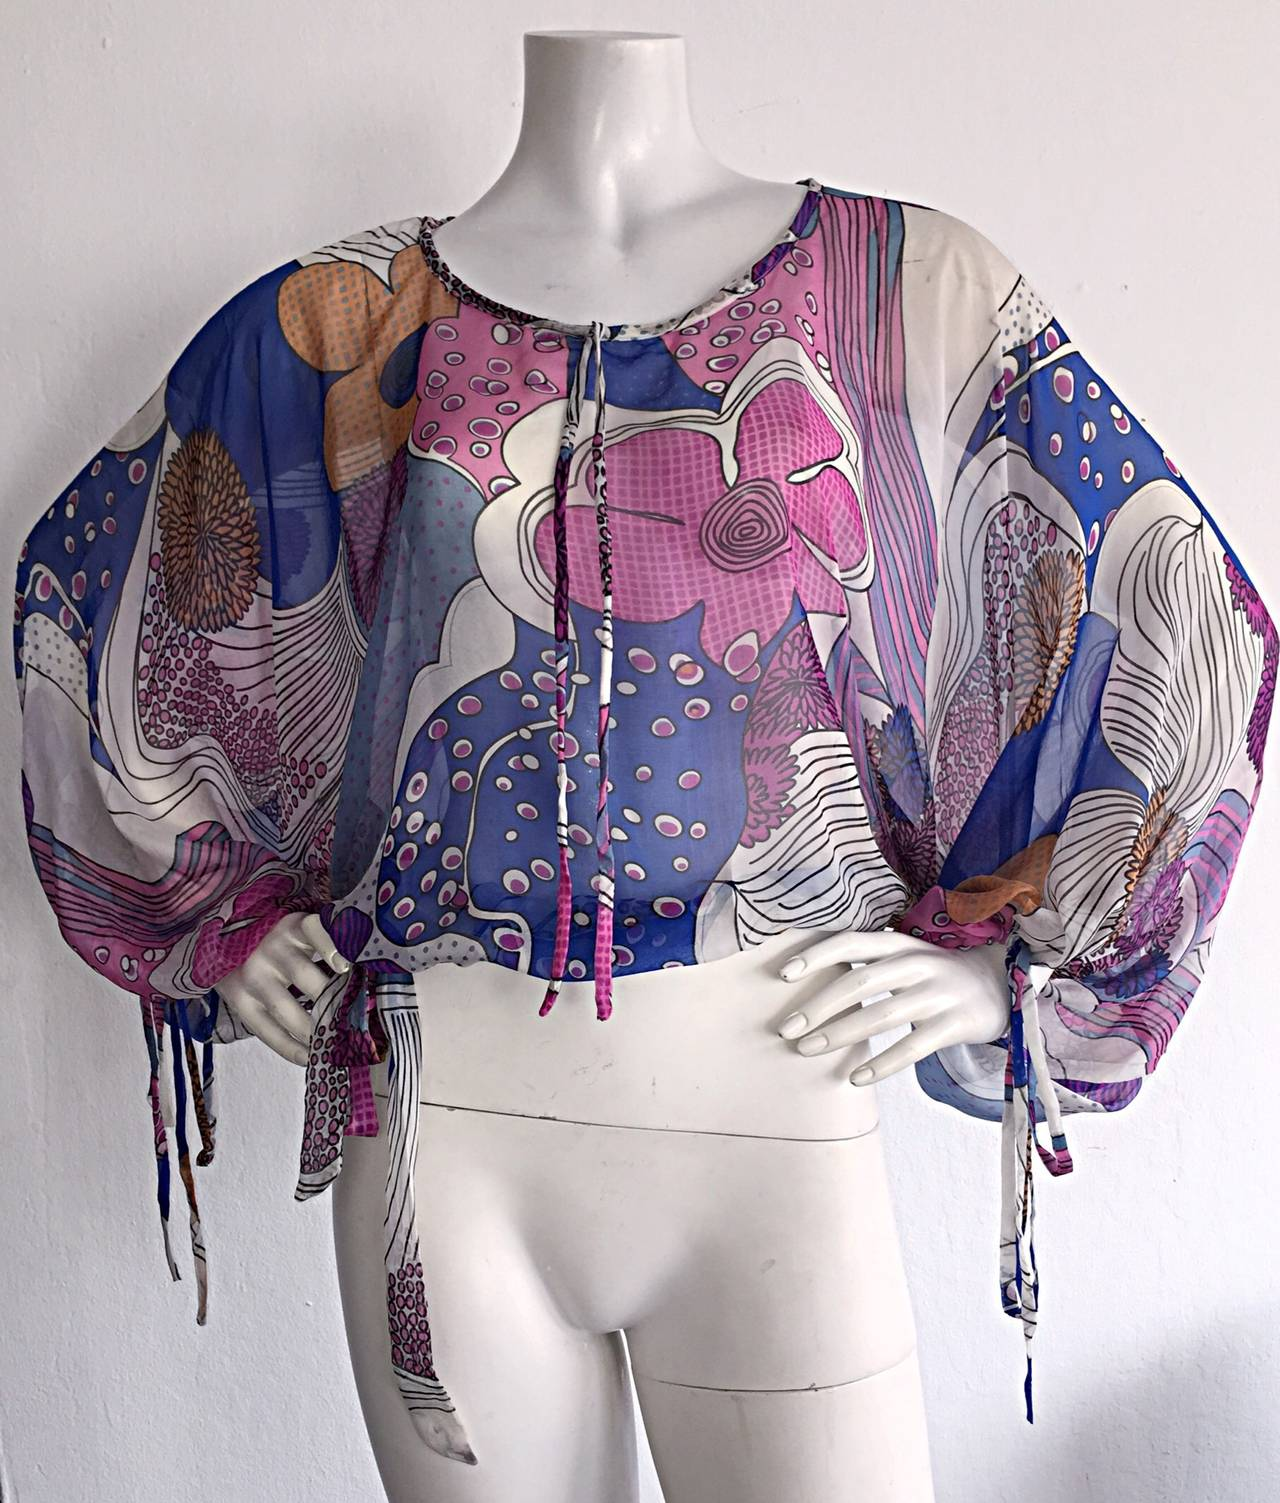 Incredible vintage Kenzo Bohemian blouse! Can be worn so many different ways! Billow sleeves, with a loose fit, and drawstring waist, to fit many sizes. Wild flower print throughout. Ties at sleeves, neck, and waist. Can easily transition from day